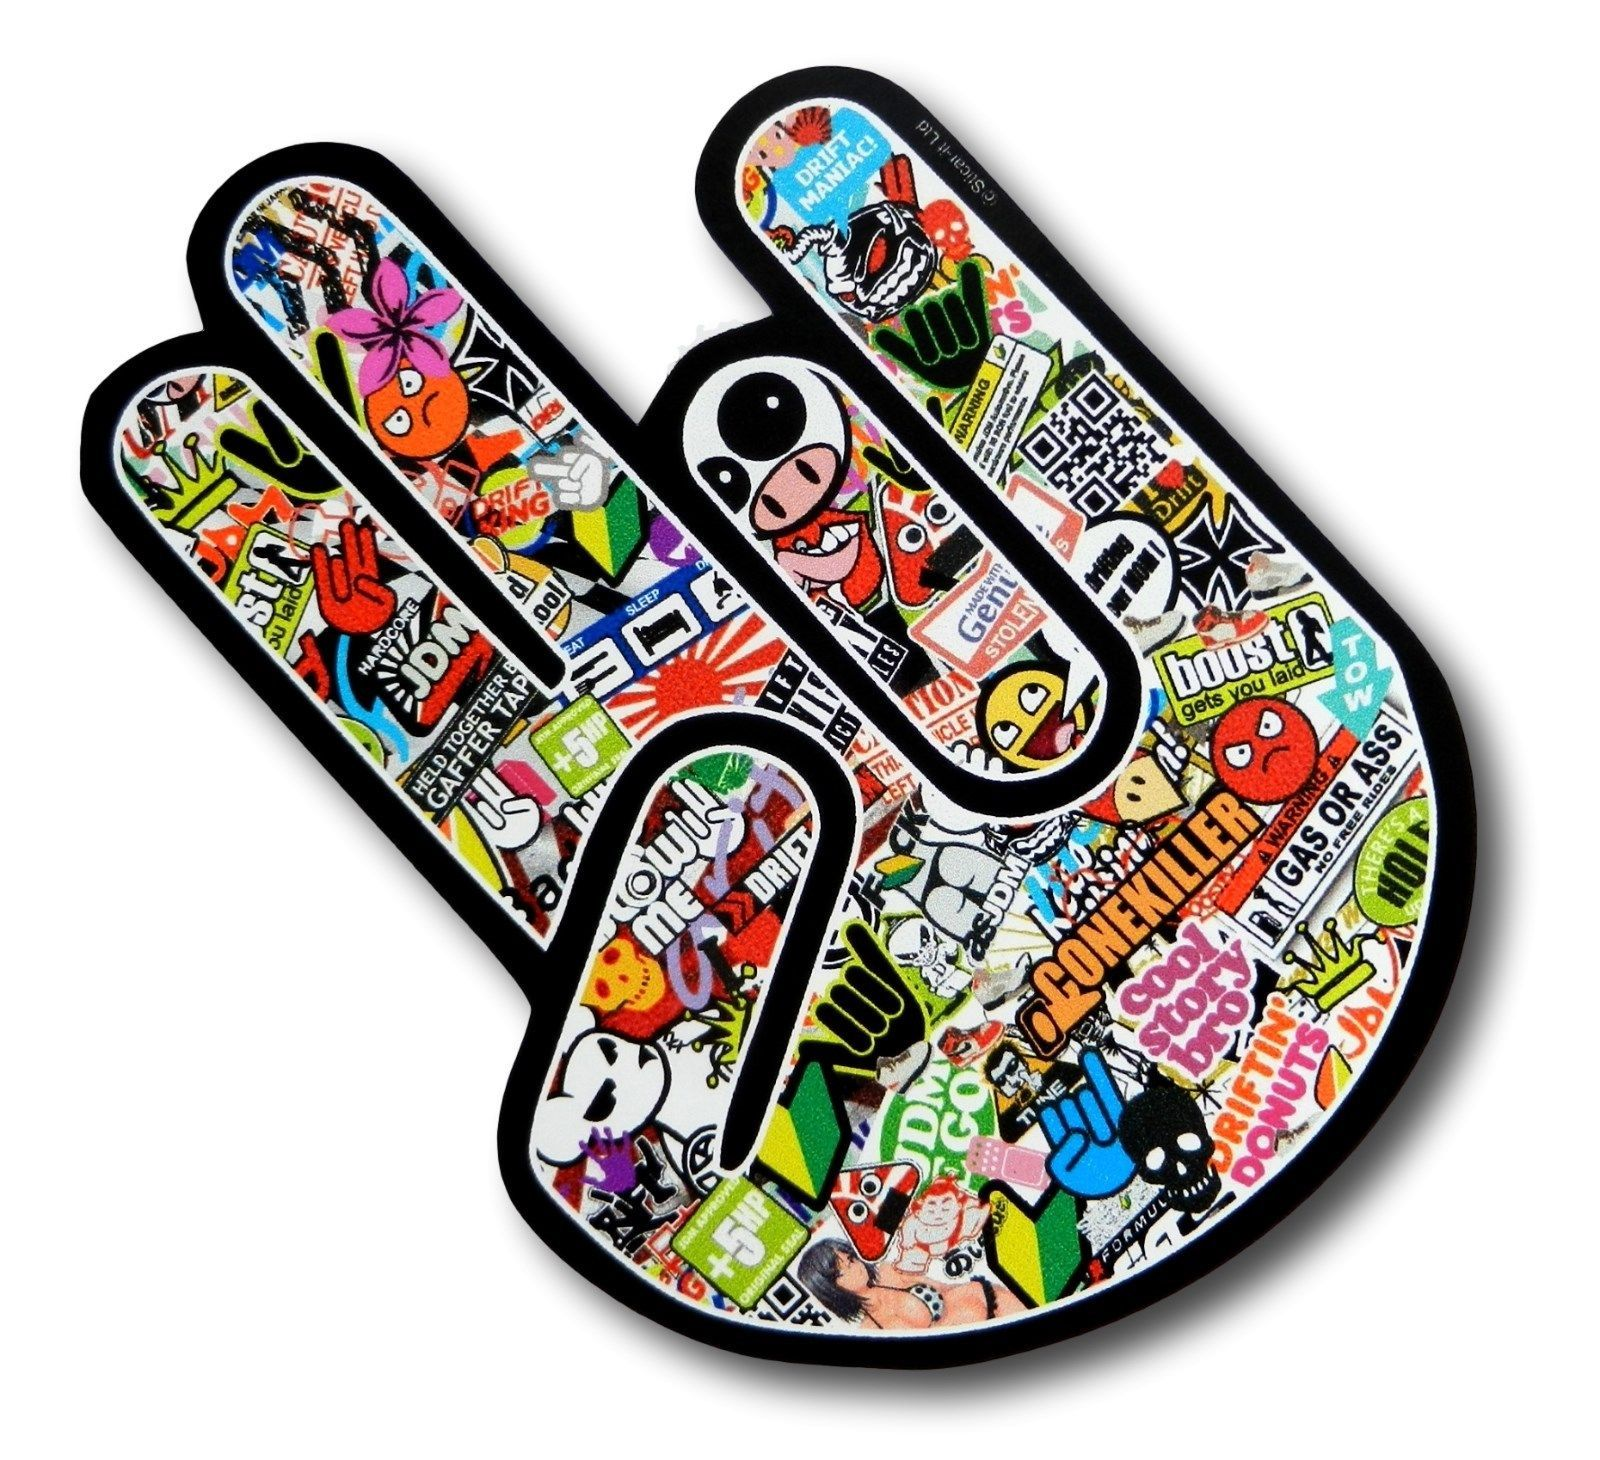 Car Stickers Decals >> THE SHOCKER HAND With JDM Style Multi Colour Stickerbomb Motif Vinyl Car sticker decal 115x80mm